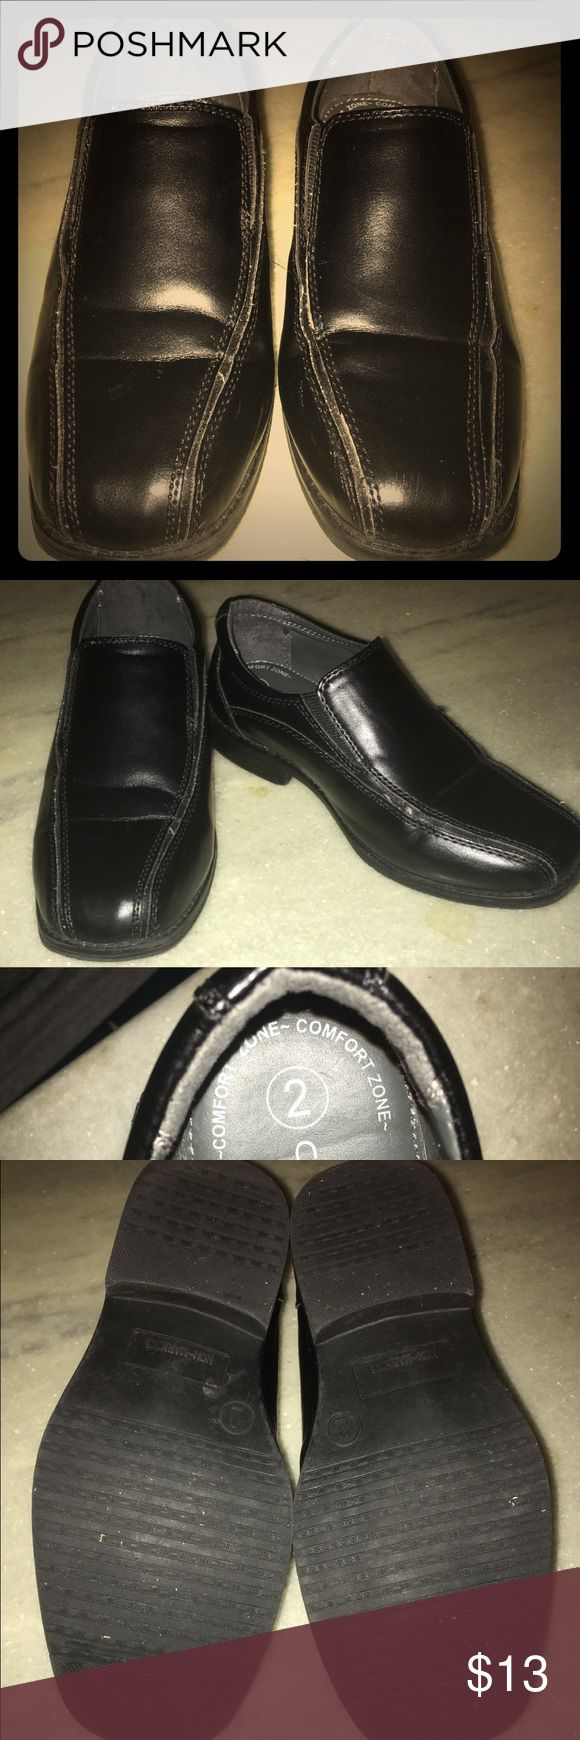 Boy's Dress Shoes Boy's size 2 dress shoes by Cherokee. Shoes are in good condition but have creases on the front and some loose stitching. Cherokee Shoes Dress Shoes